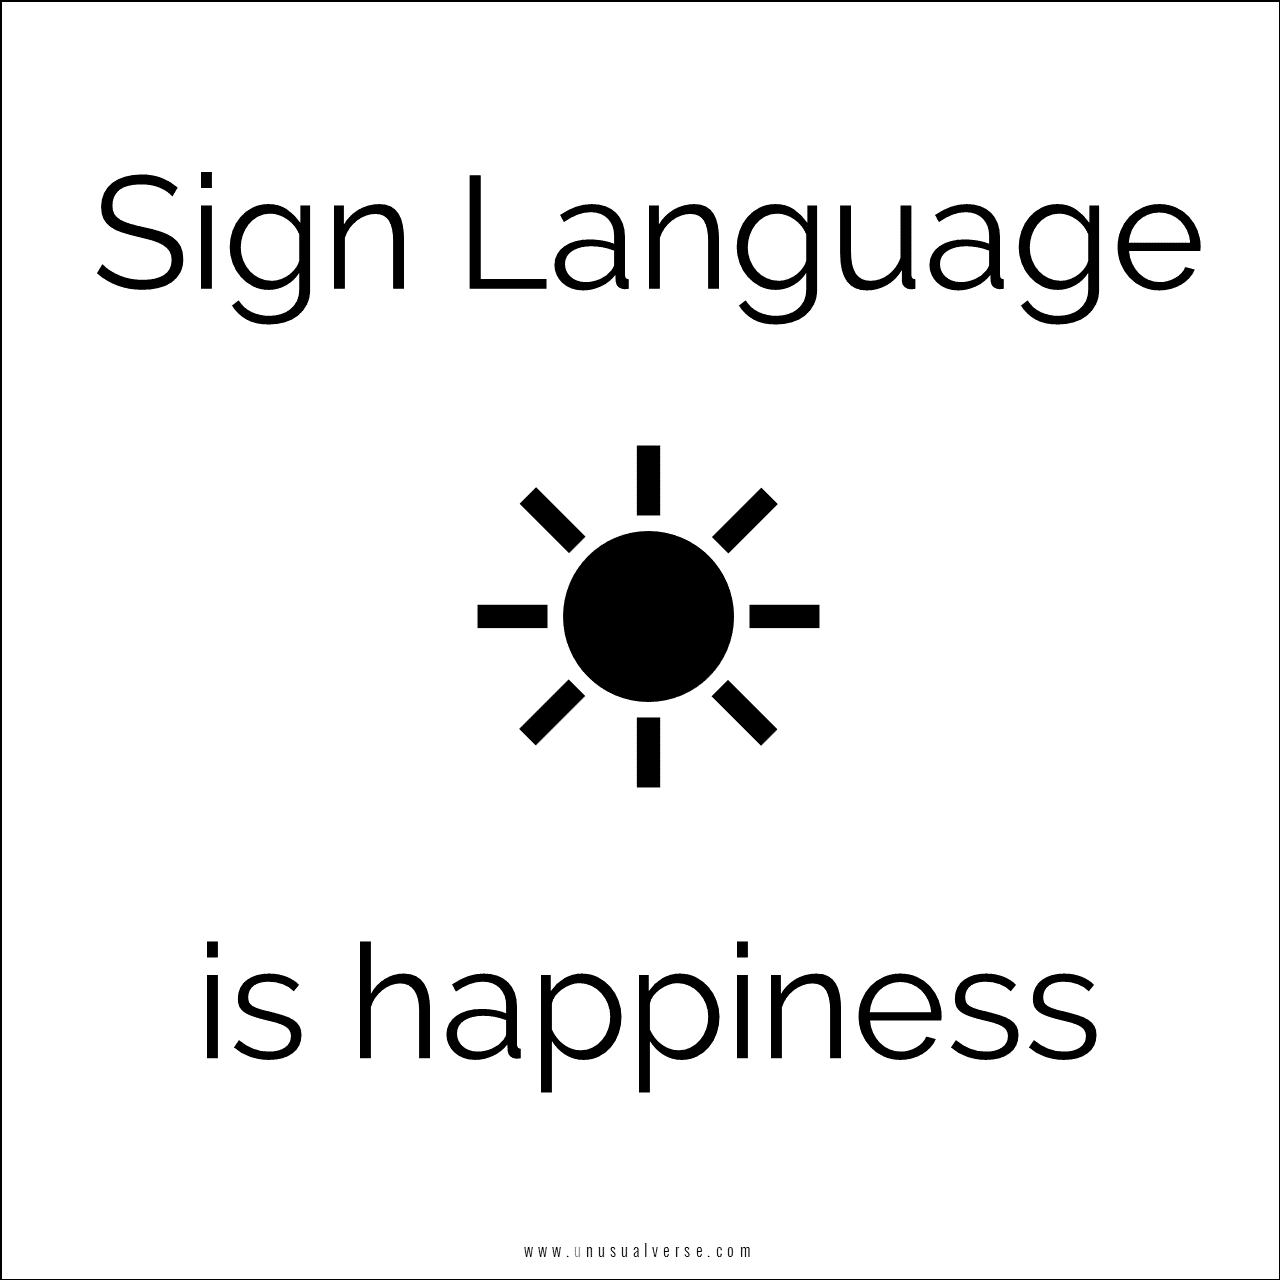 Sign Language is happiness